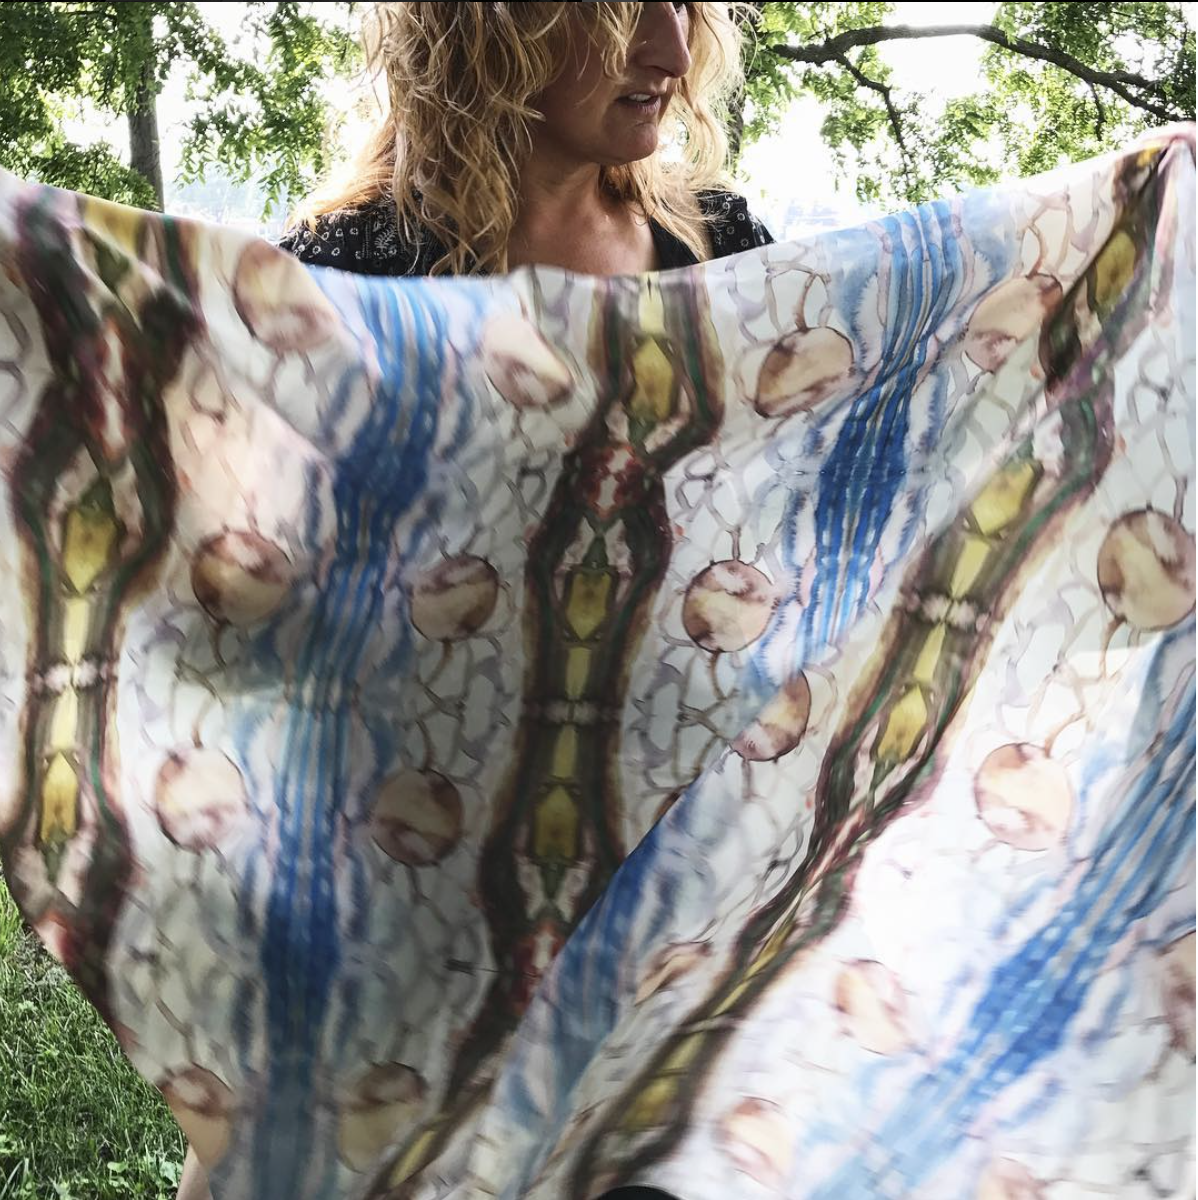 Skylab 2017, LAVillita Residency, New Mexico - I spent the summer of 2017 at La Villita Ranch and Mergirl Farm in the Rio Grande Valley, exploring and translating ideas about relationships in the open New Mexico landscapes into repeat images on organic crepe silk. Because silk is touchable,moveable,and wearable, the Skylab Series allowed me to play with ideas about ownership and stewardship.Those works led me to new ideas and explorations of how mountains may feel and what air looks like and how breaking down my paintings about the land and sky into more ethereal images and patterns and finally producing something to adorn the body, enticing and soft enough to bring a sense of comfort, might begin a shift in perspective about the earth and a dialogue about our relationship to it.